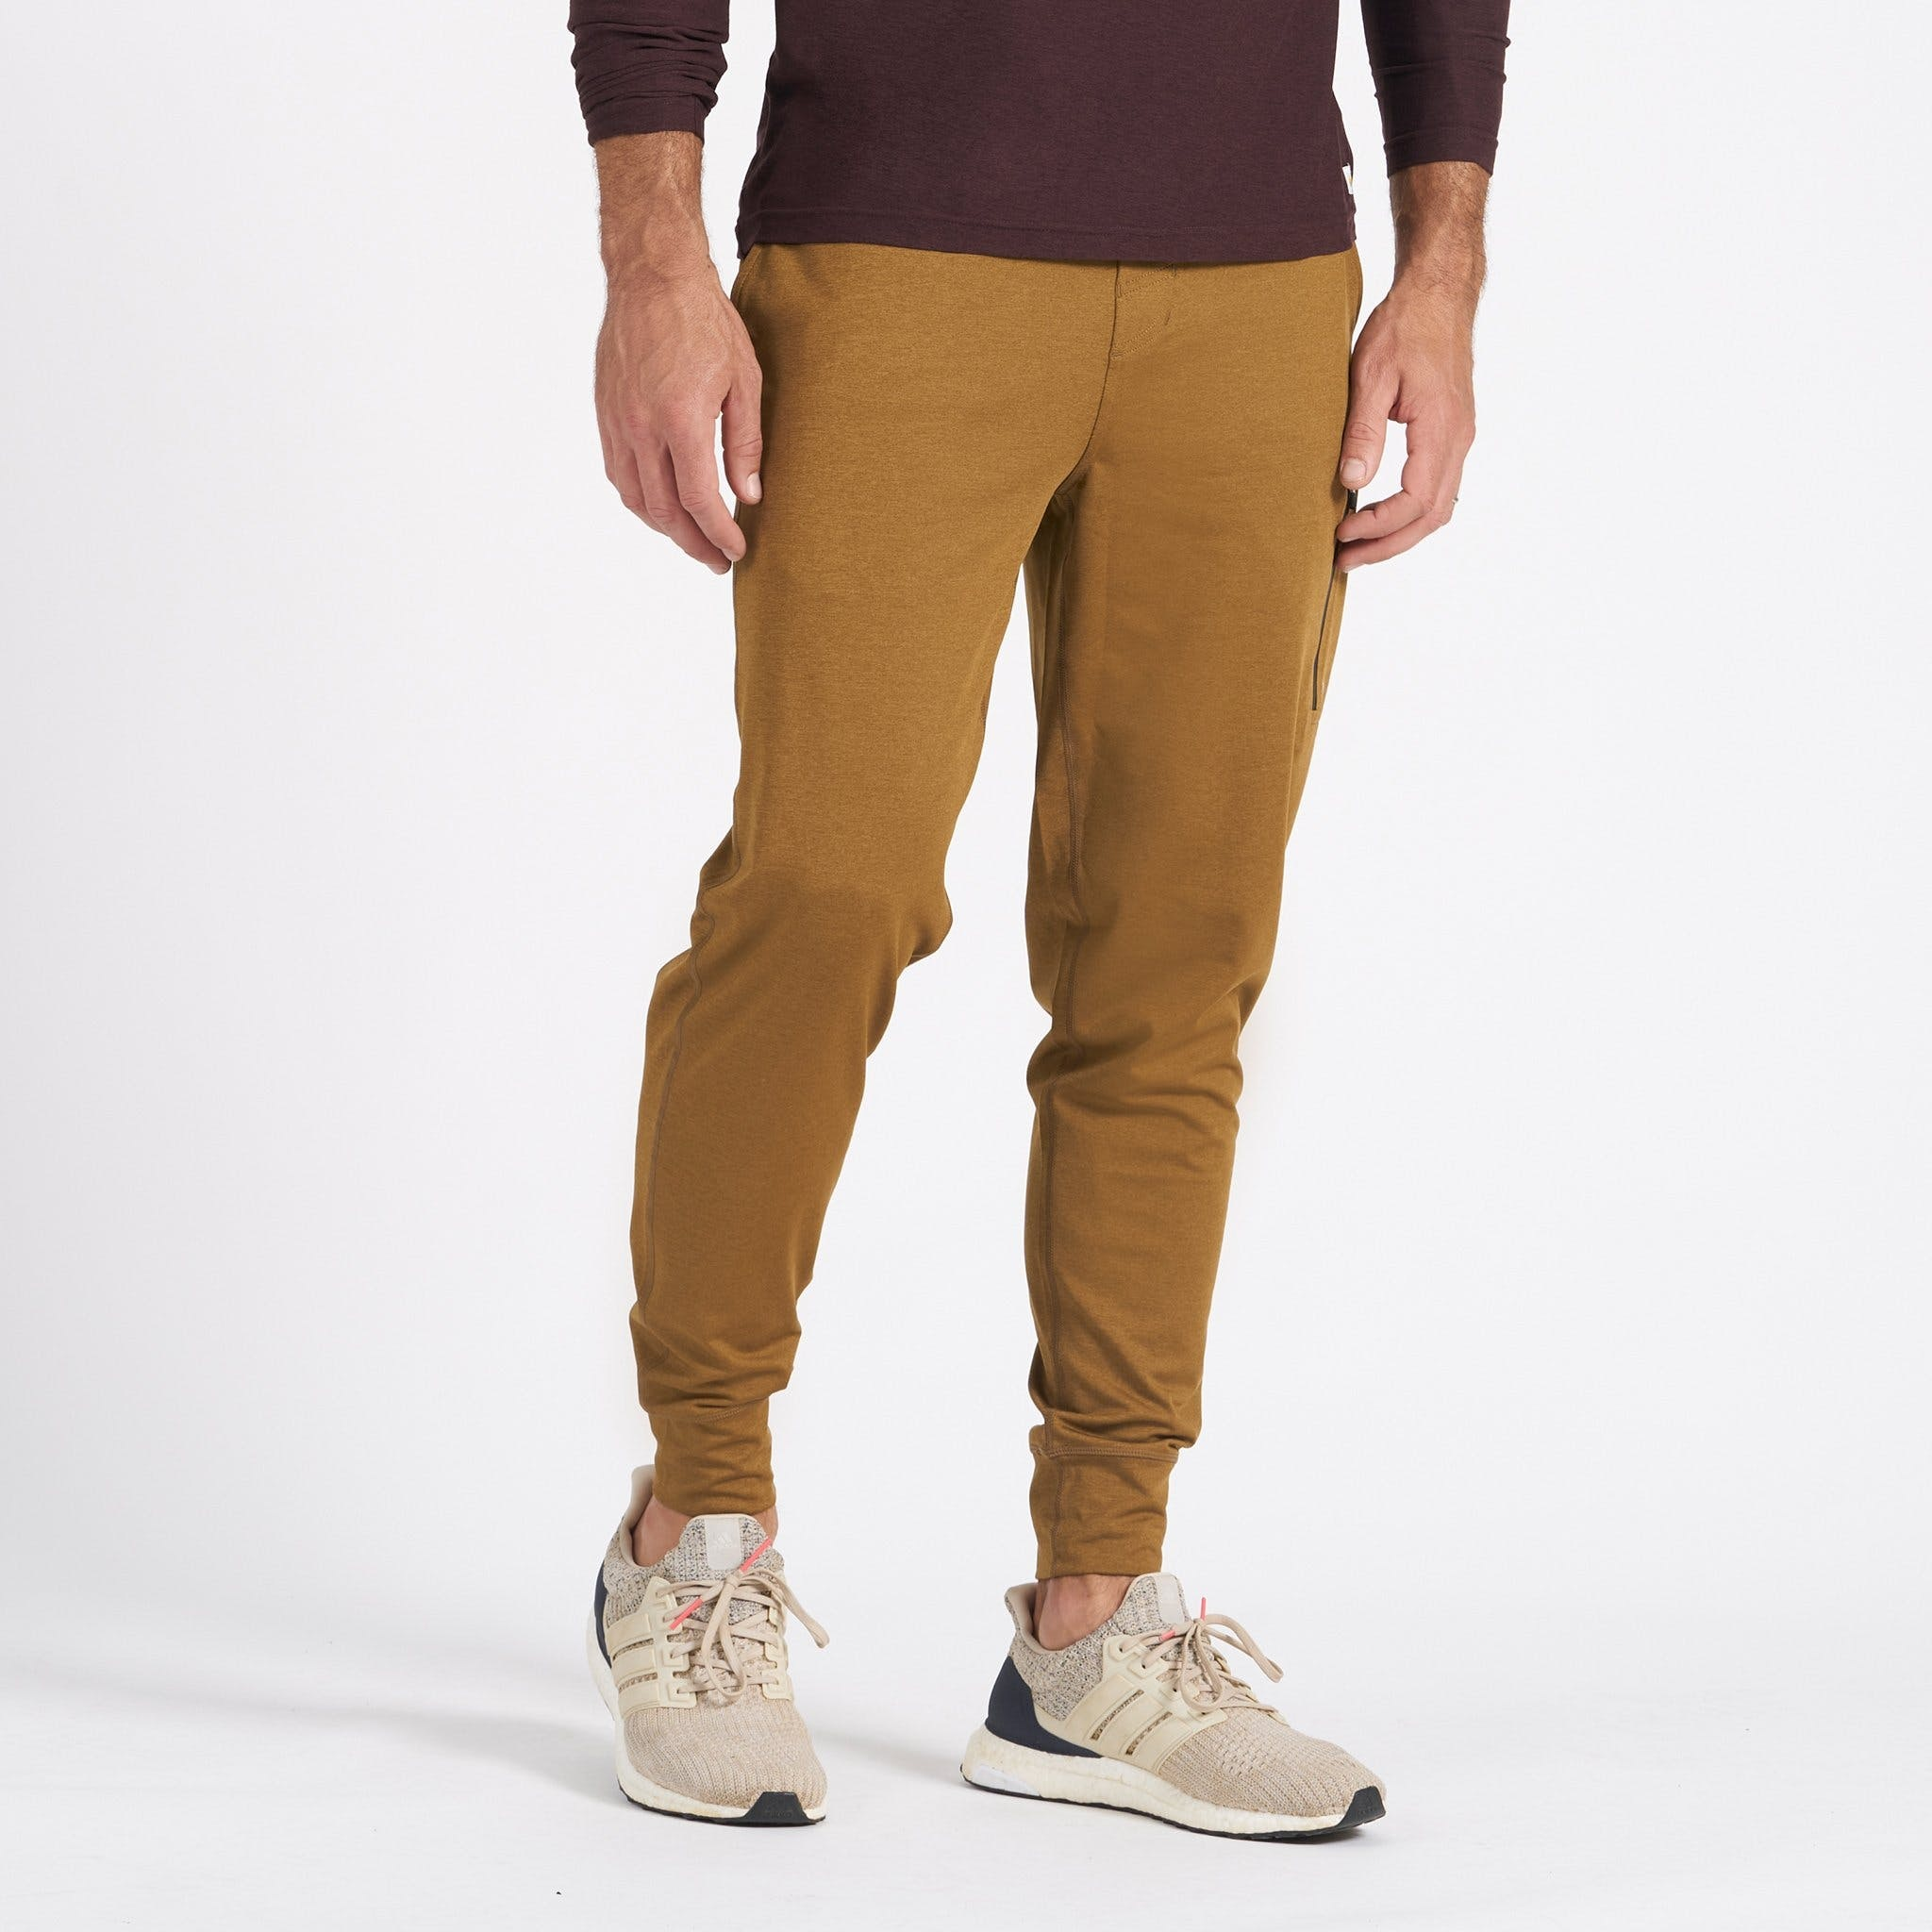 Vuori Vuori Men's Sunday Performance Jogger